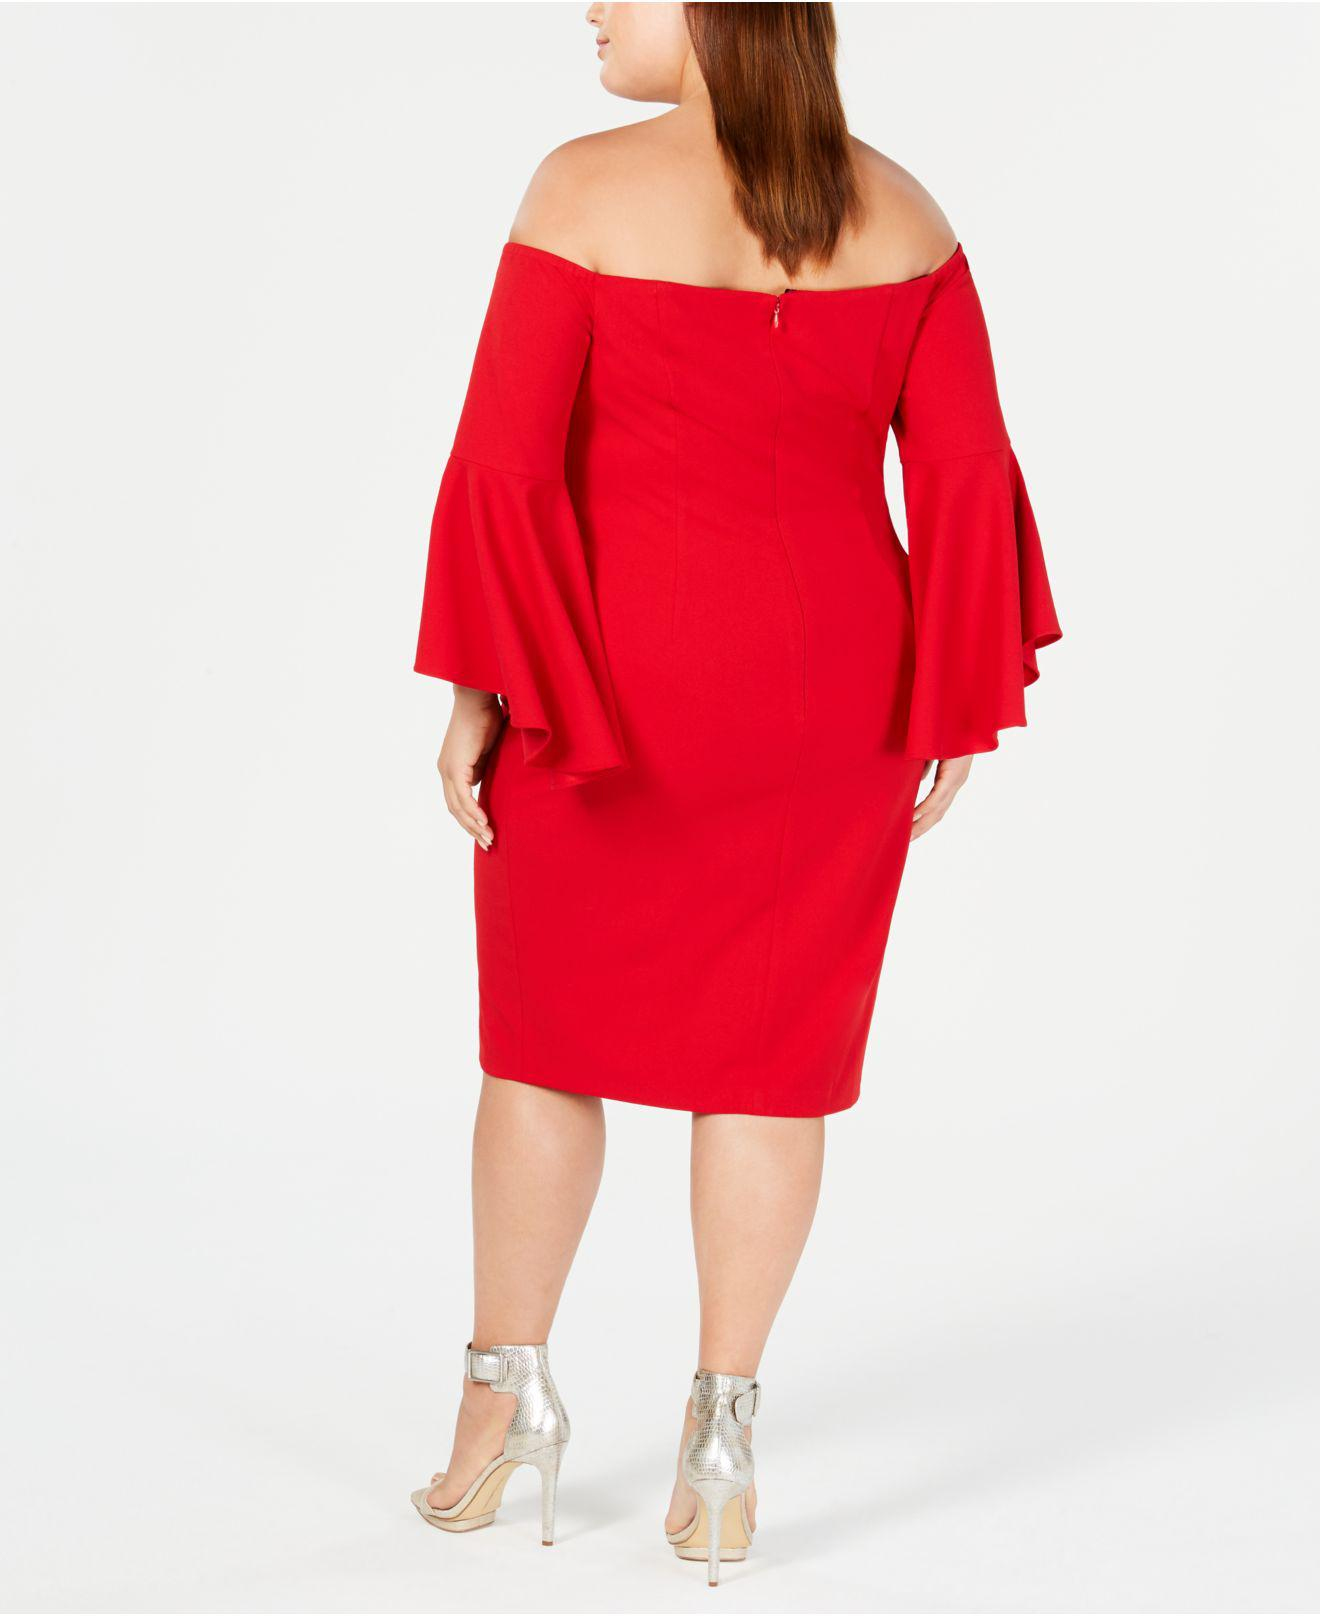 b55eb20a47eea Lyst - Calvin Klein Plus Size Off-the-shoulder Crepe Dress in Red